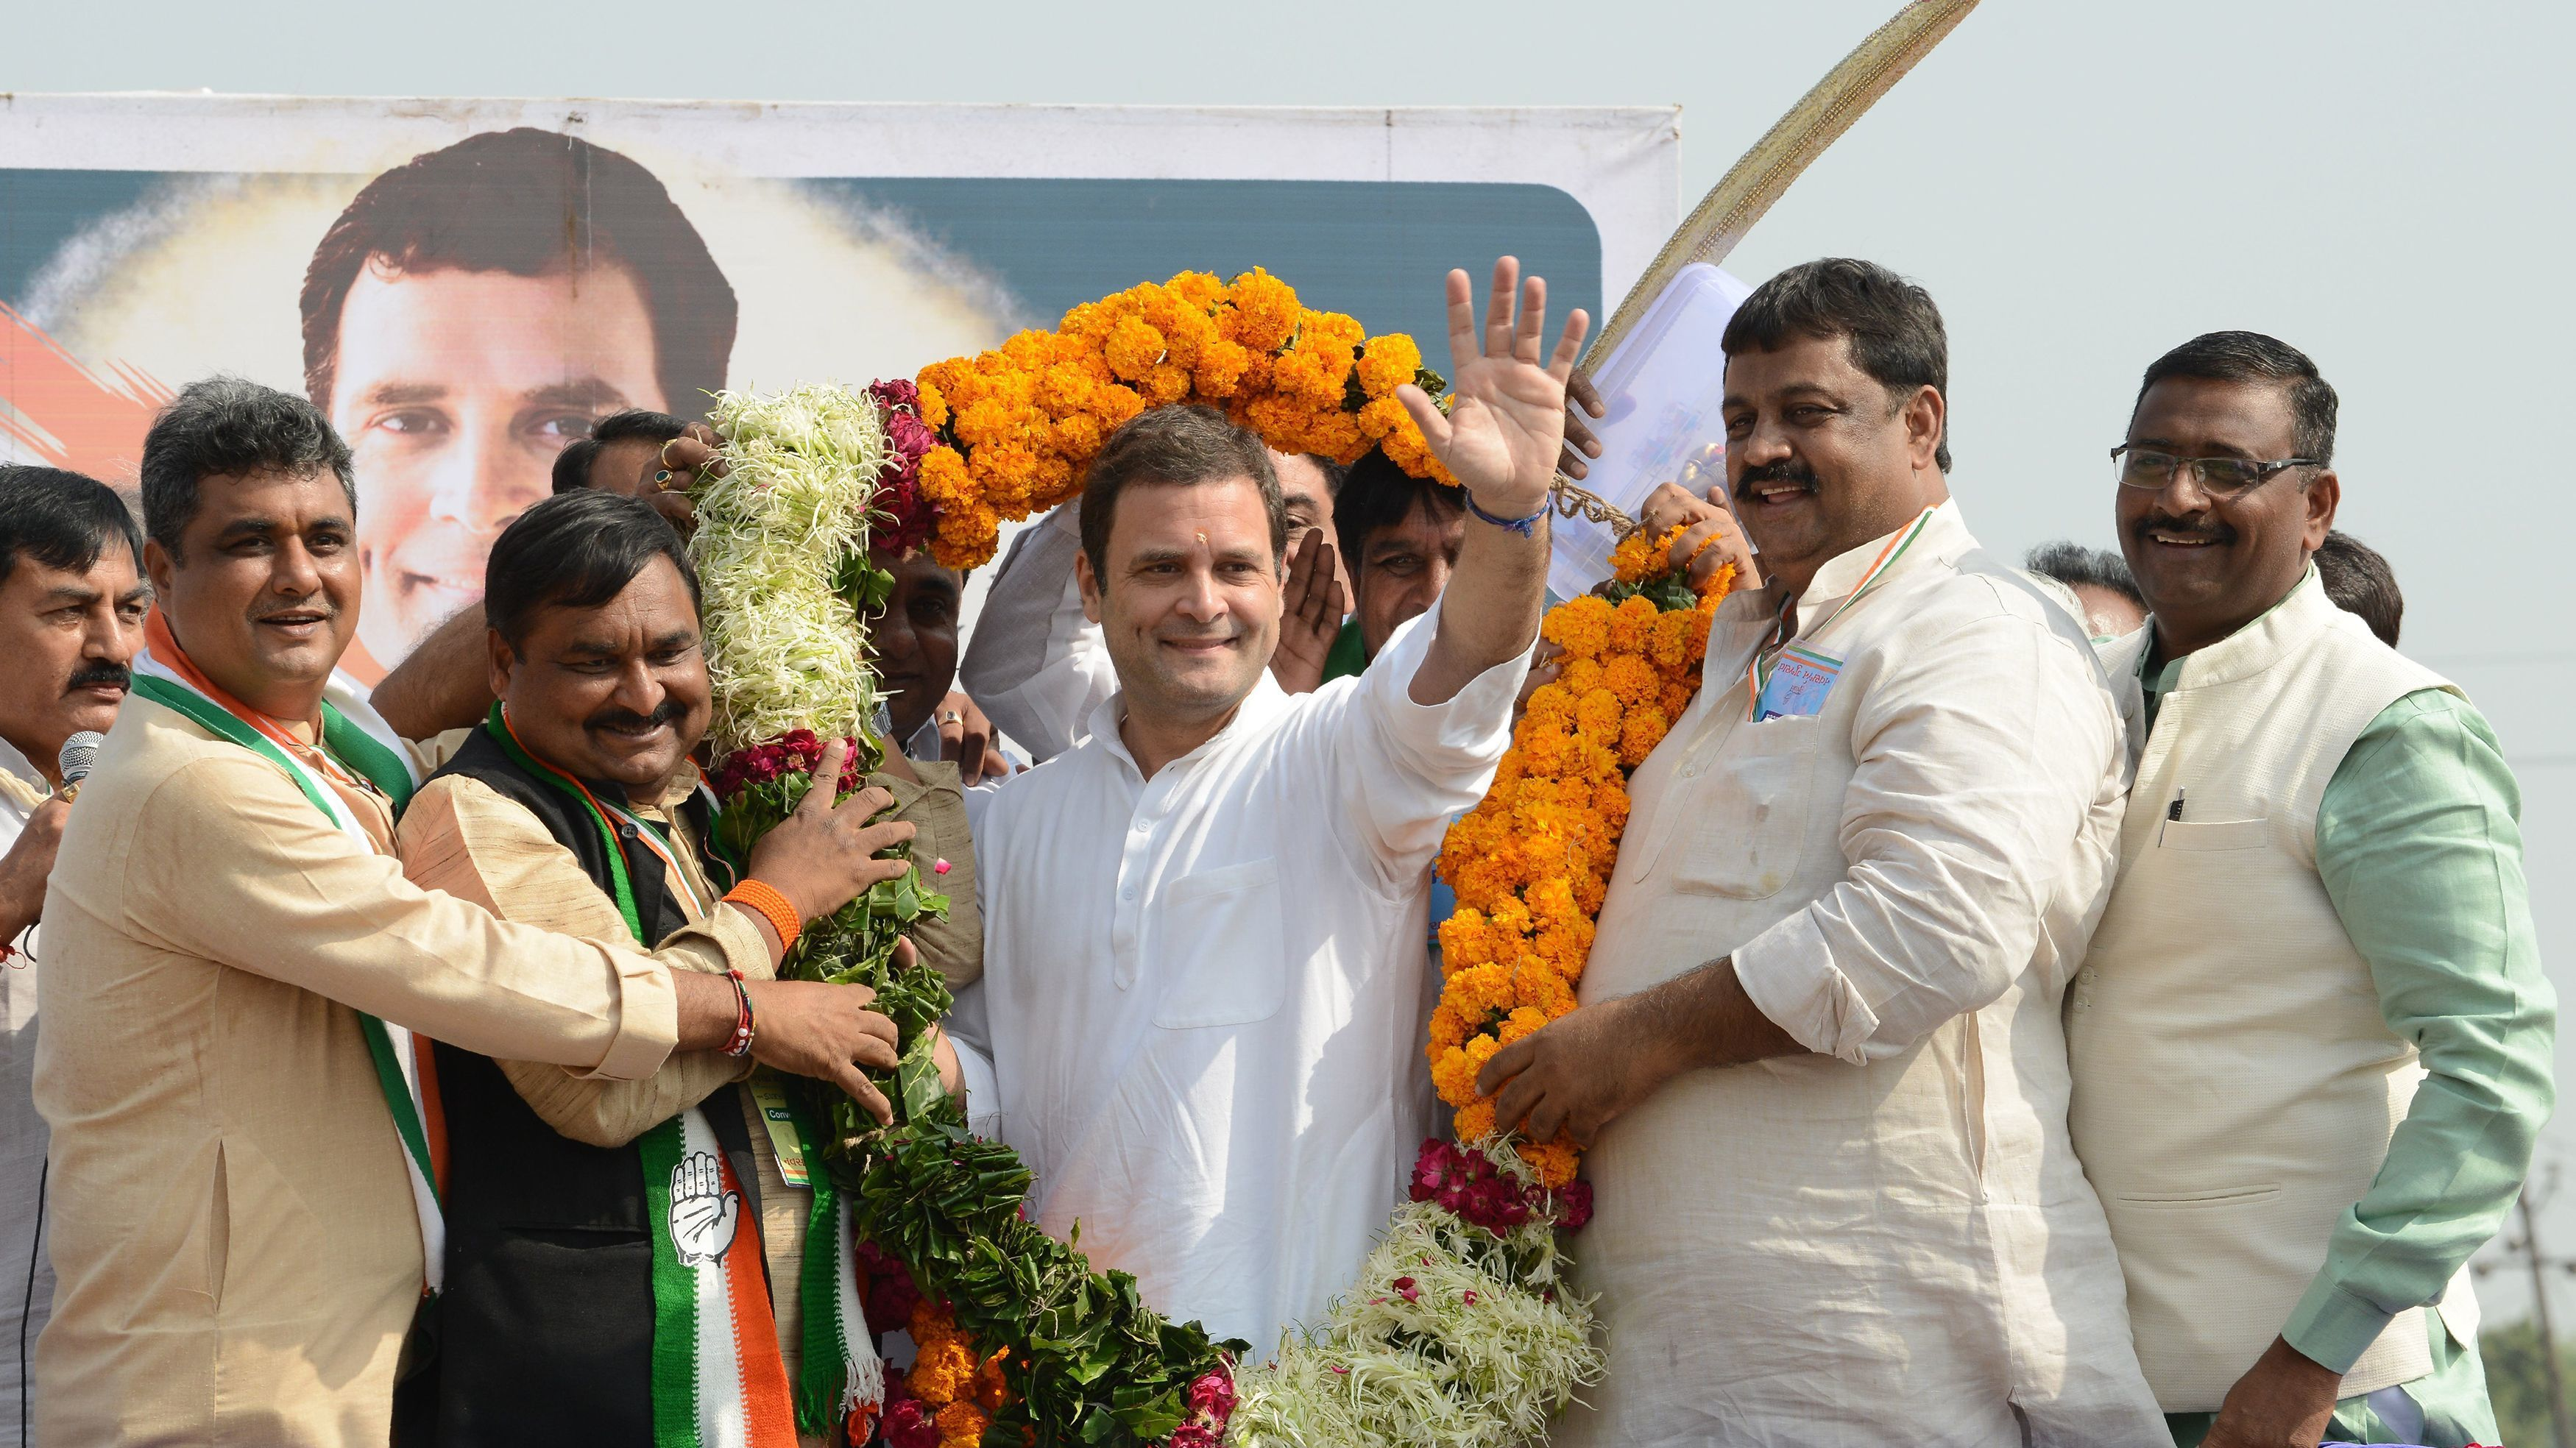 As A New Gandhi Takes Over Can India's Opposition Find Its Footing Again